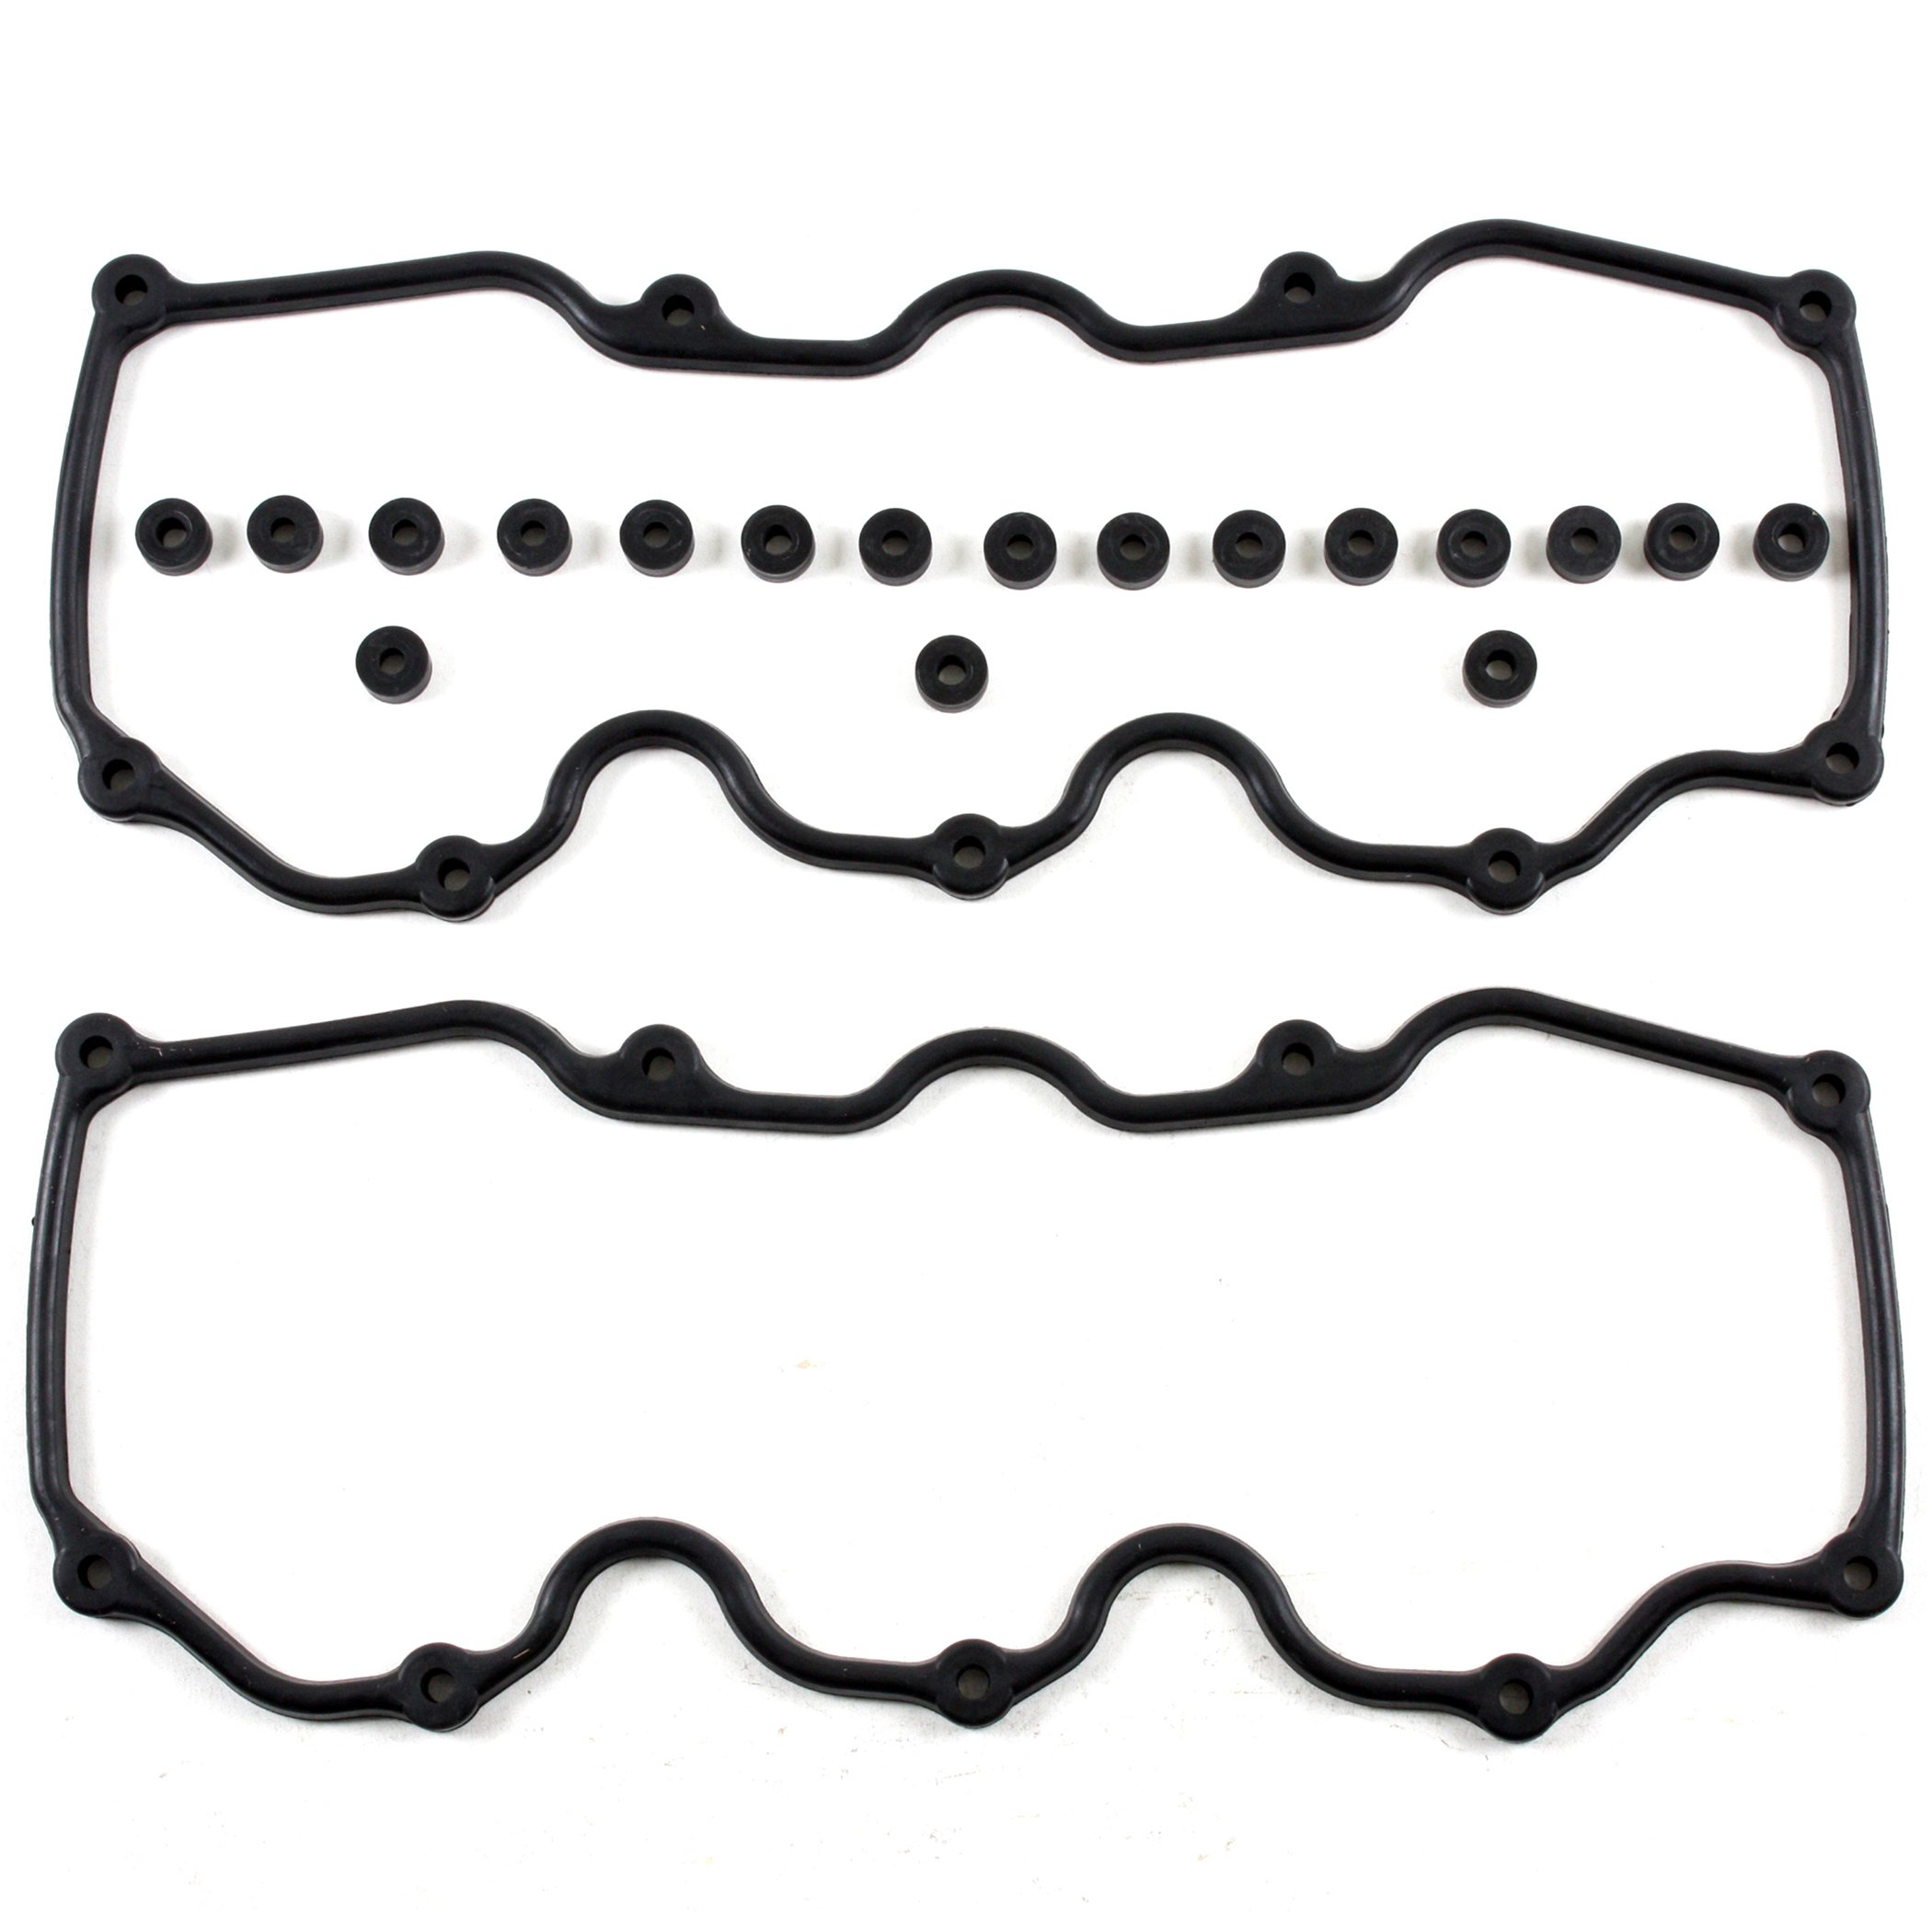 CNS VC640 Brand New Engine Valve Cover Gasket Set (With Grommets)